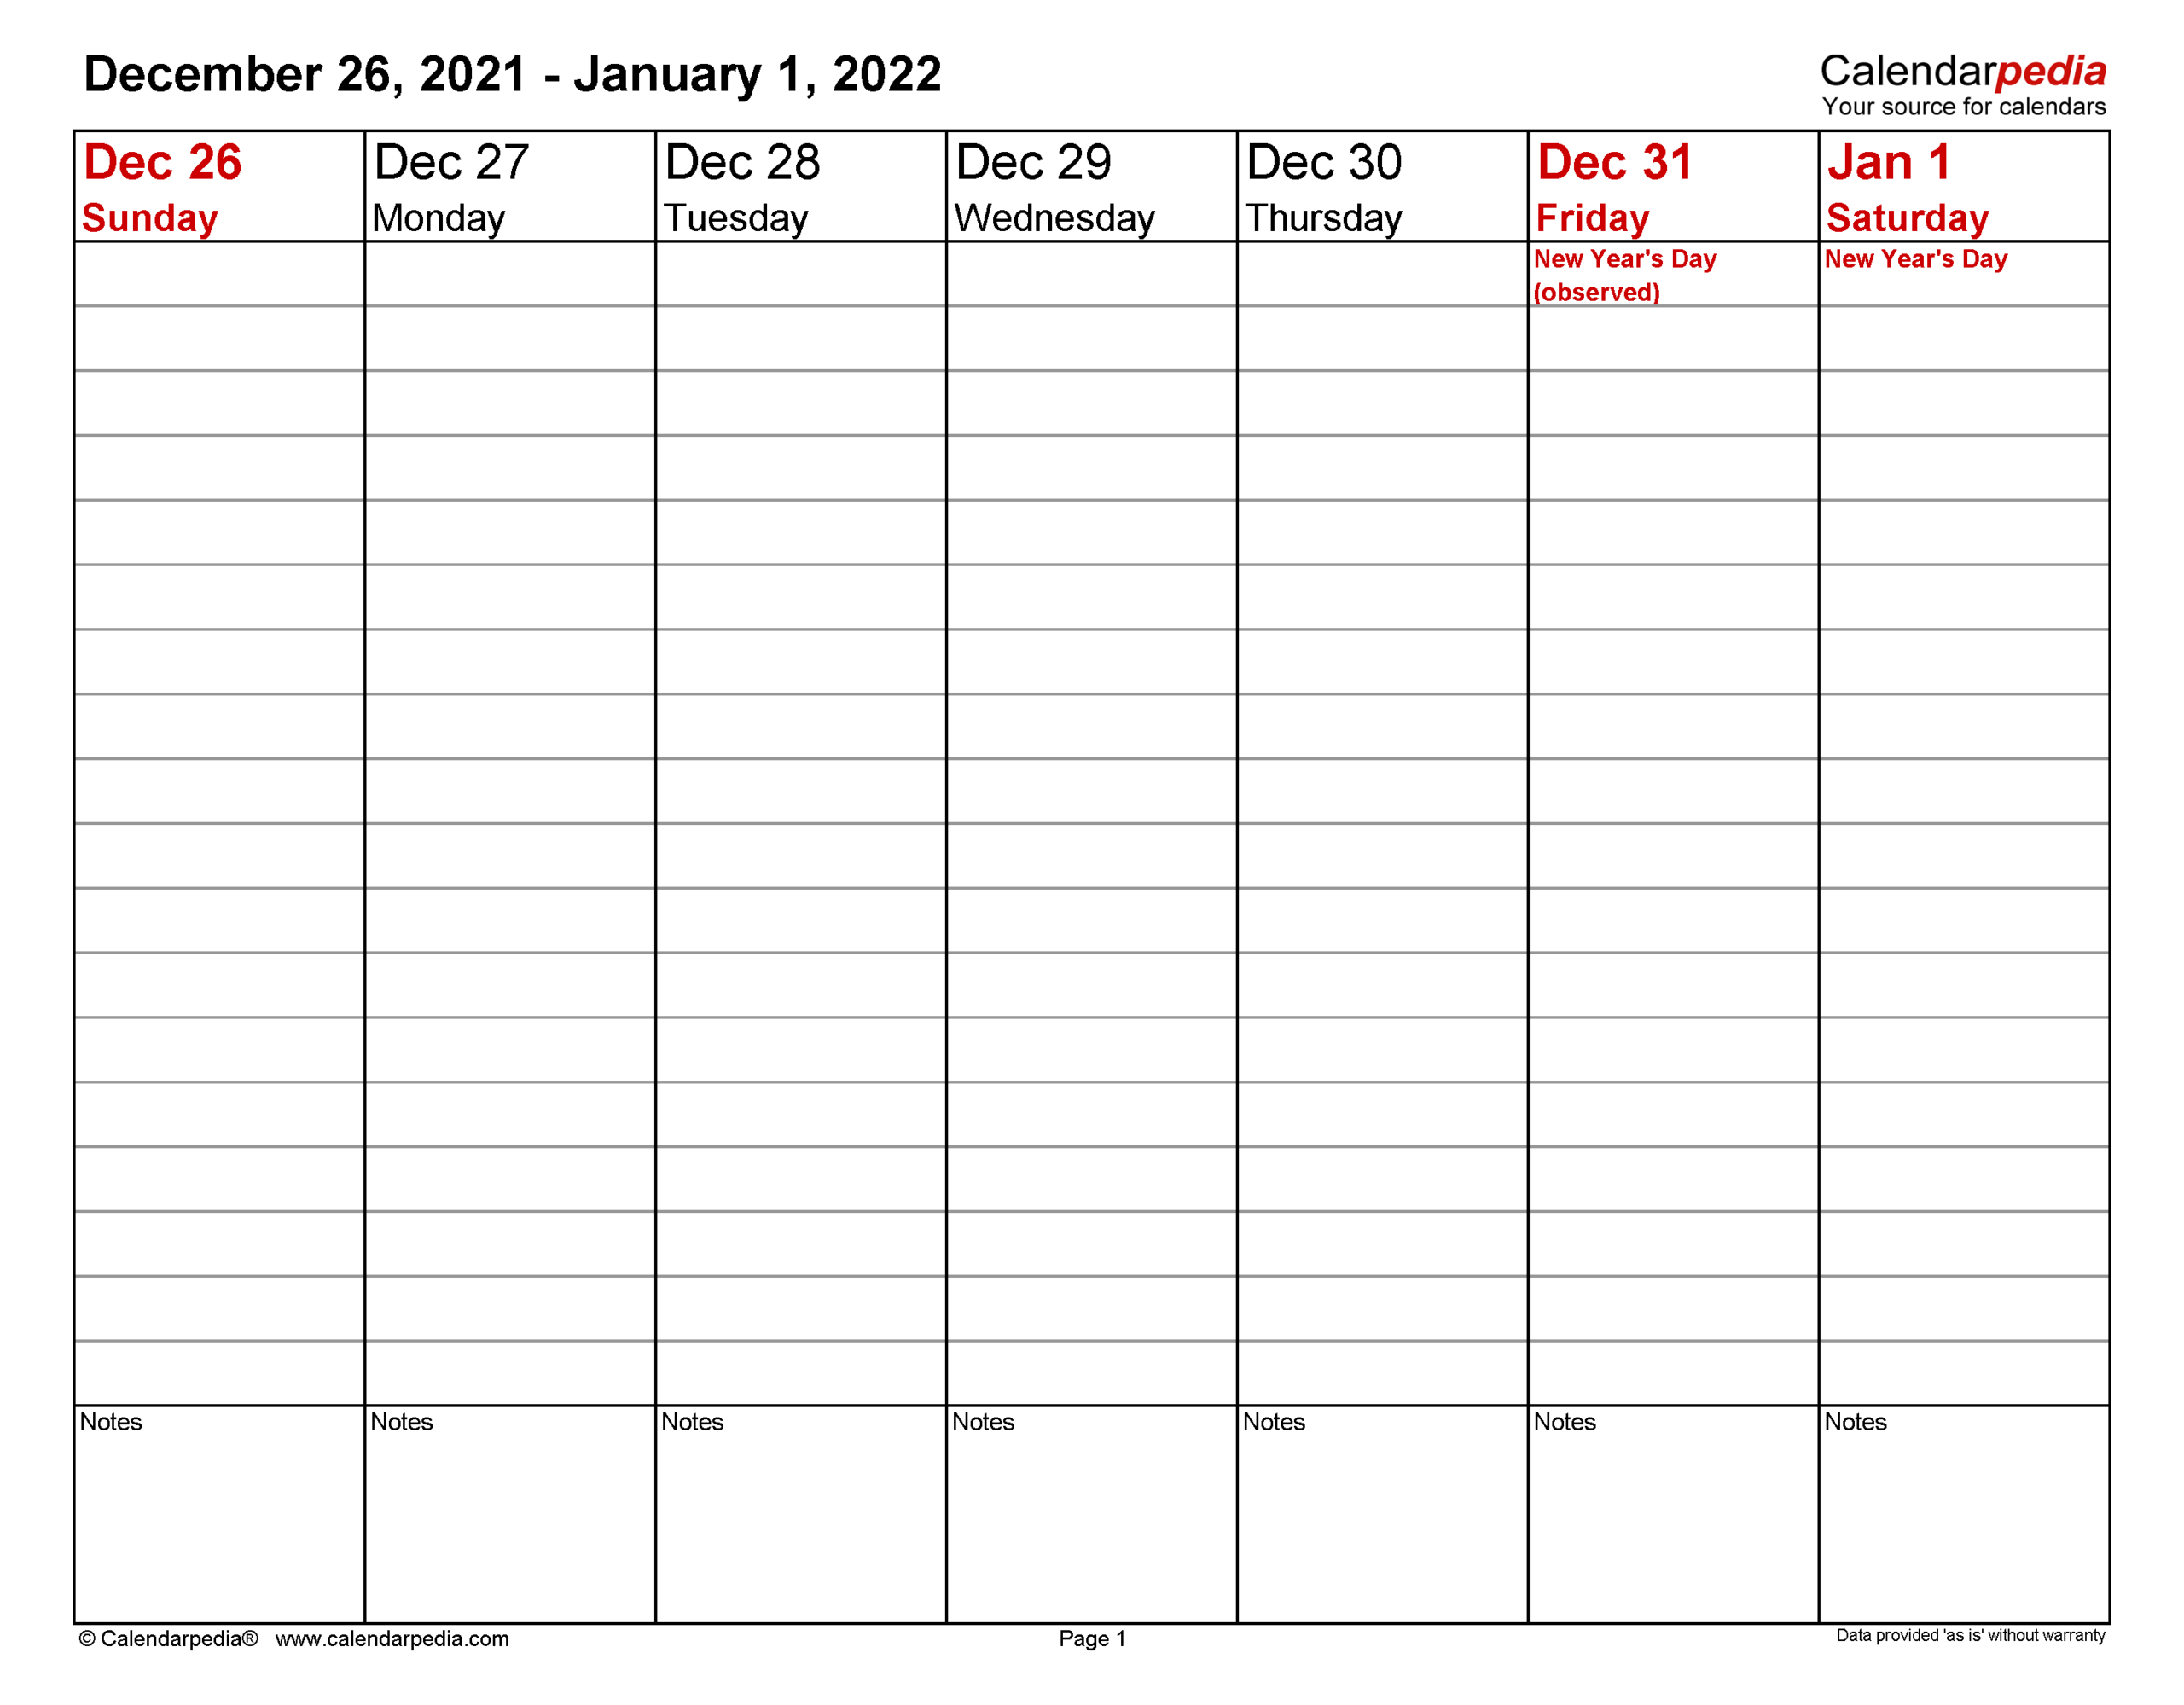 Weekly Calendars 2022 For Excel - 12 Free Printable Templates within 2022 2022 Monthly Planner Free Printable Graphics